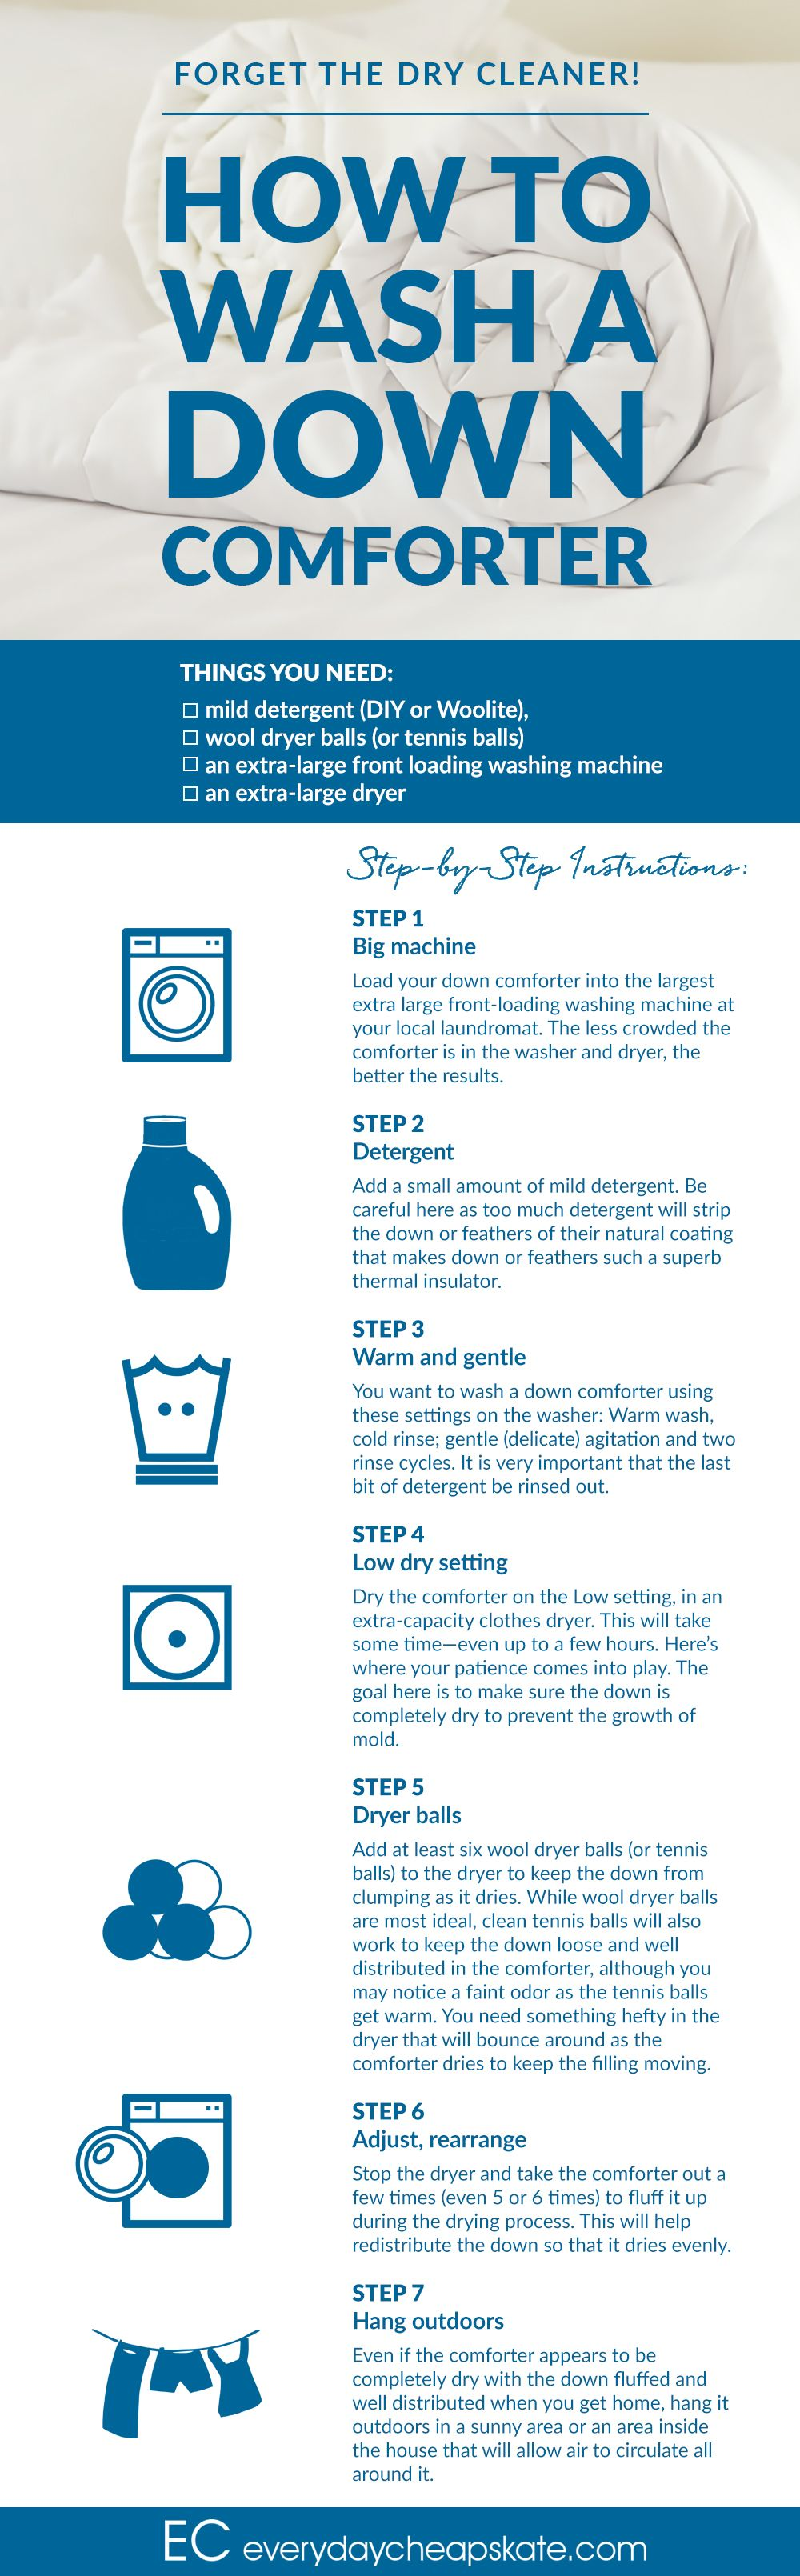 Step By Step Instructions How To Wash A Down Comforter Down Comforter Dry Cleaners Washing Down Comforter